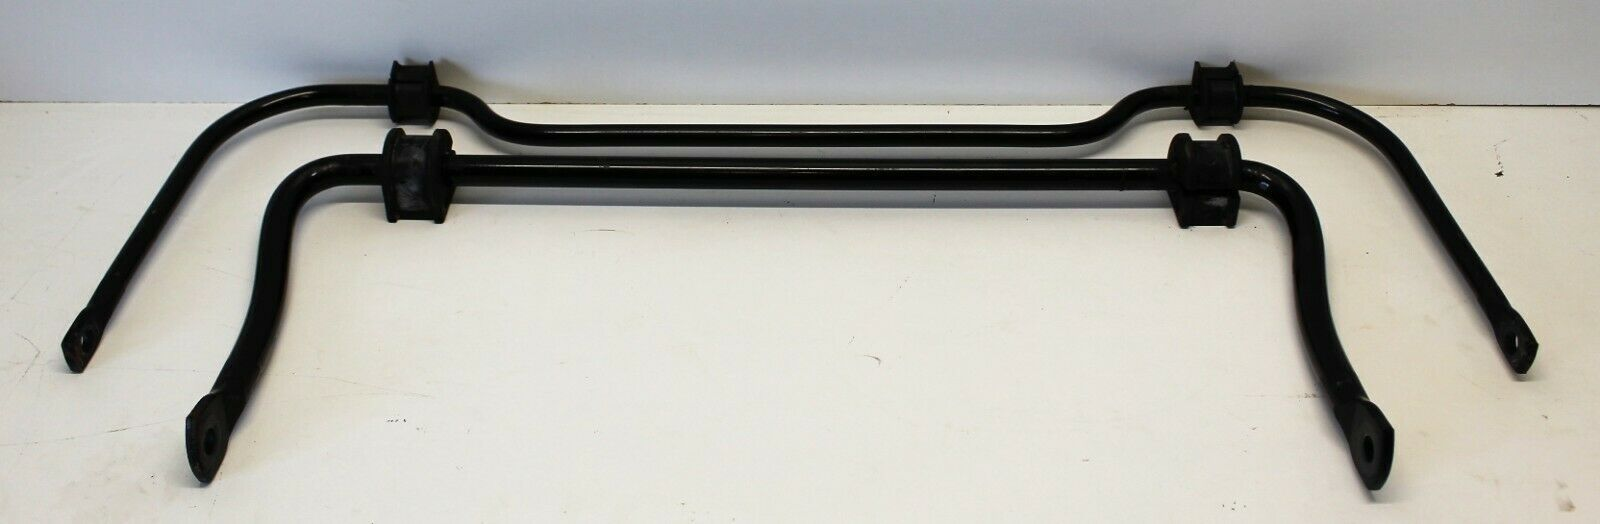 DEFENDER 90 ANTI ROLL BAR REAR ANR4344's featured image